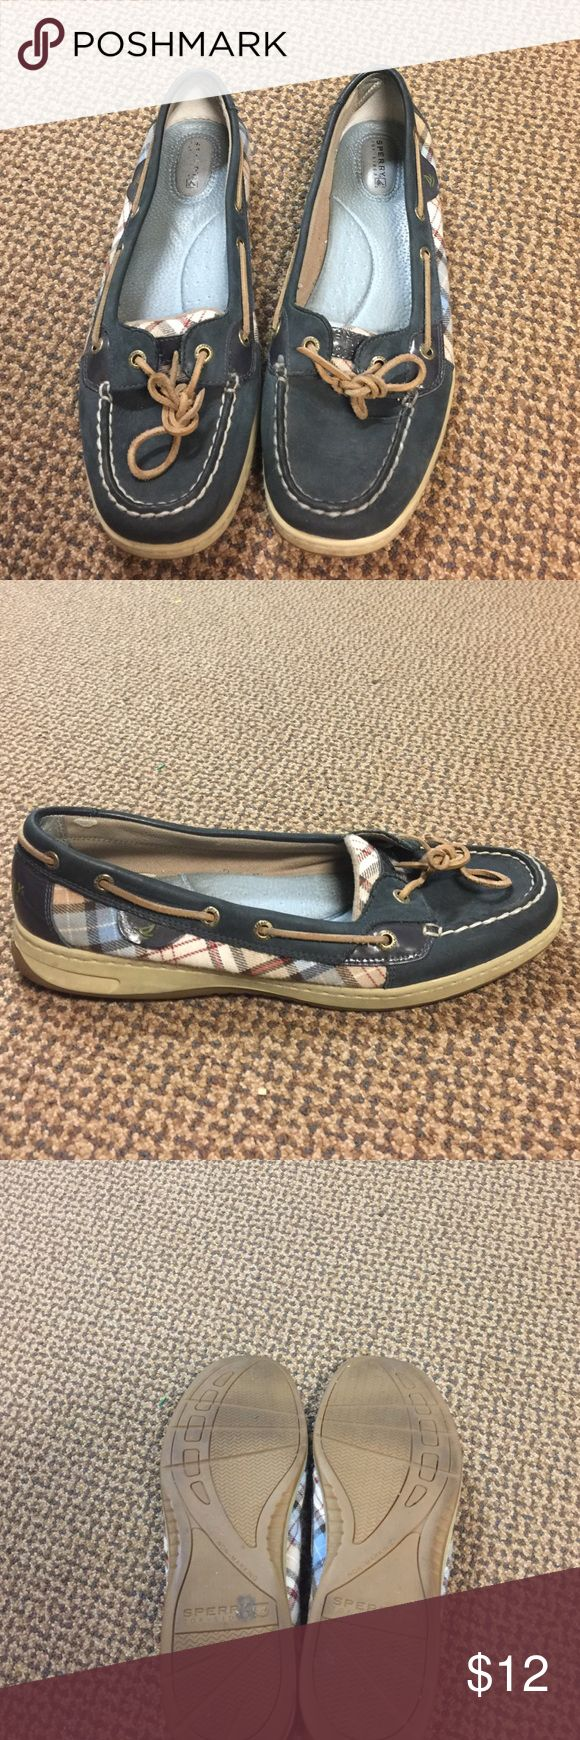 Sorry Top-sider shoes A little worn but still have some life! Sperry Top-Sider Shoes Flats & Loafers